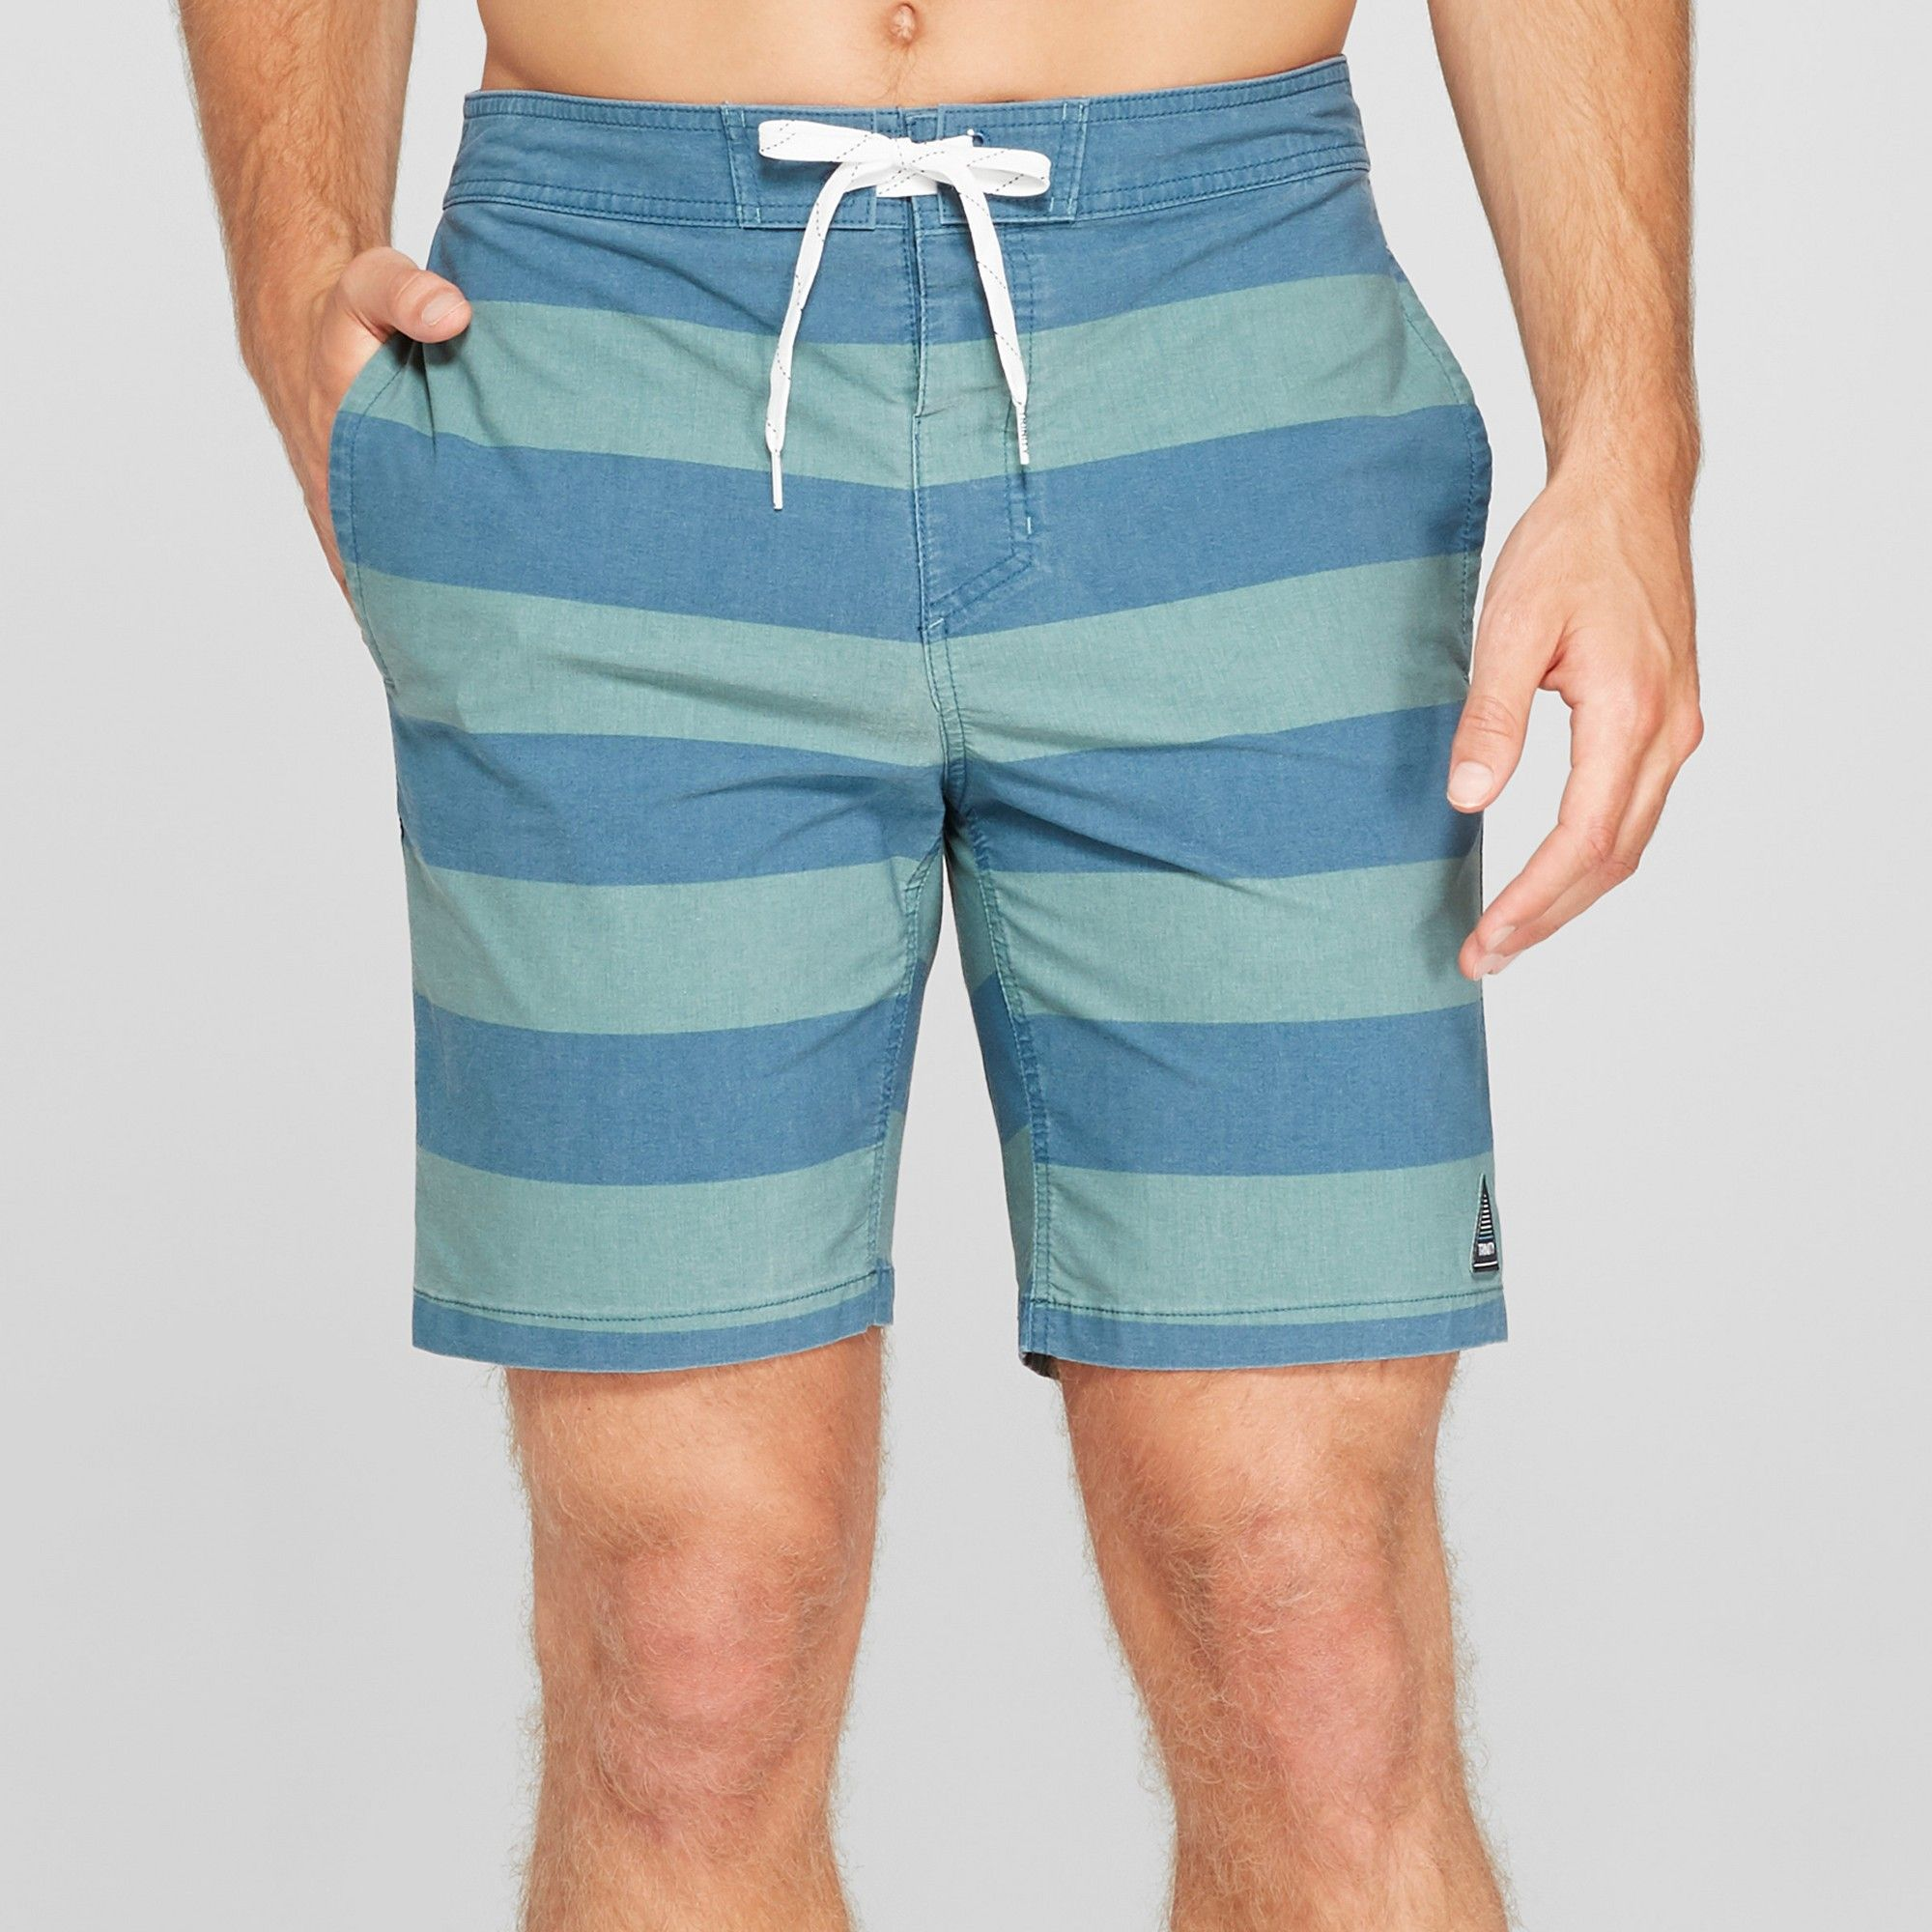 020ab21c6a510 Trinity Collective Men's Striped 8.5 Rugby Board Shorts - Deep Teal 32, Blue